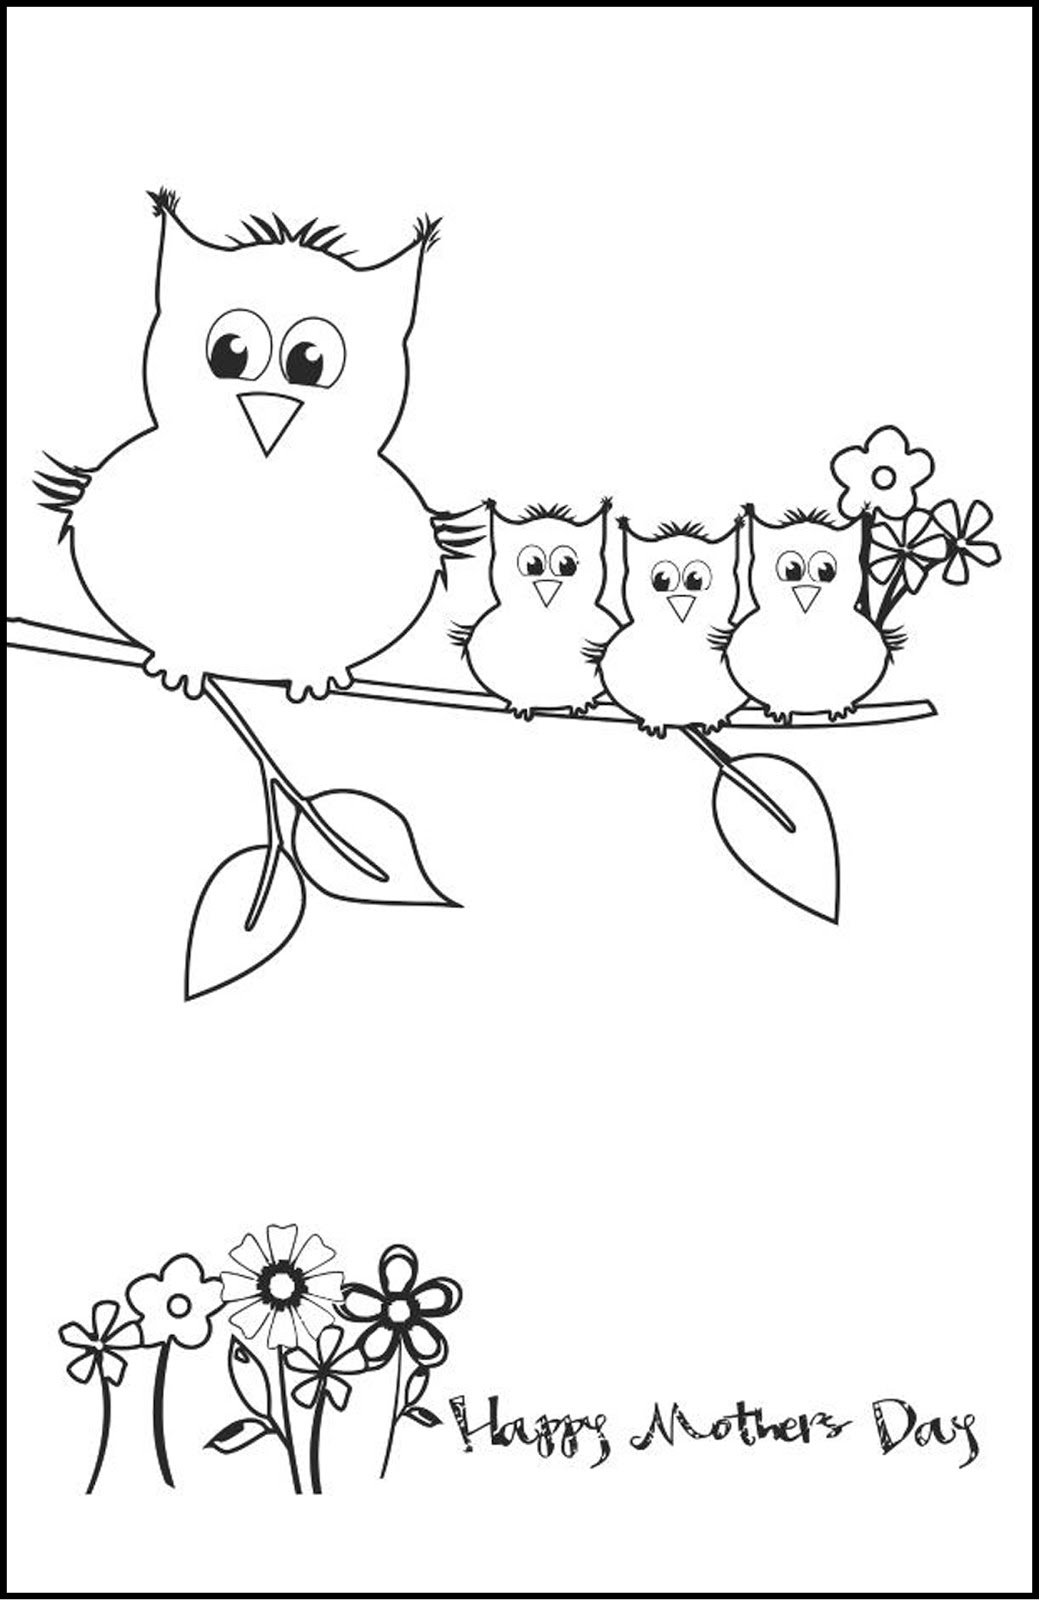 Fantail Digital Art Free Printable Colouring Card For